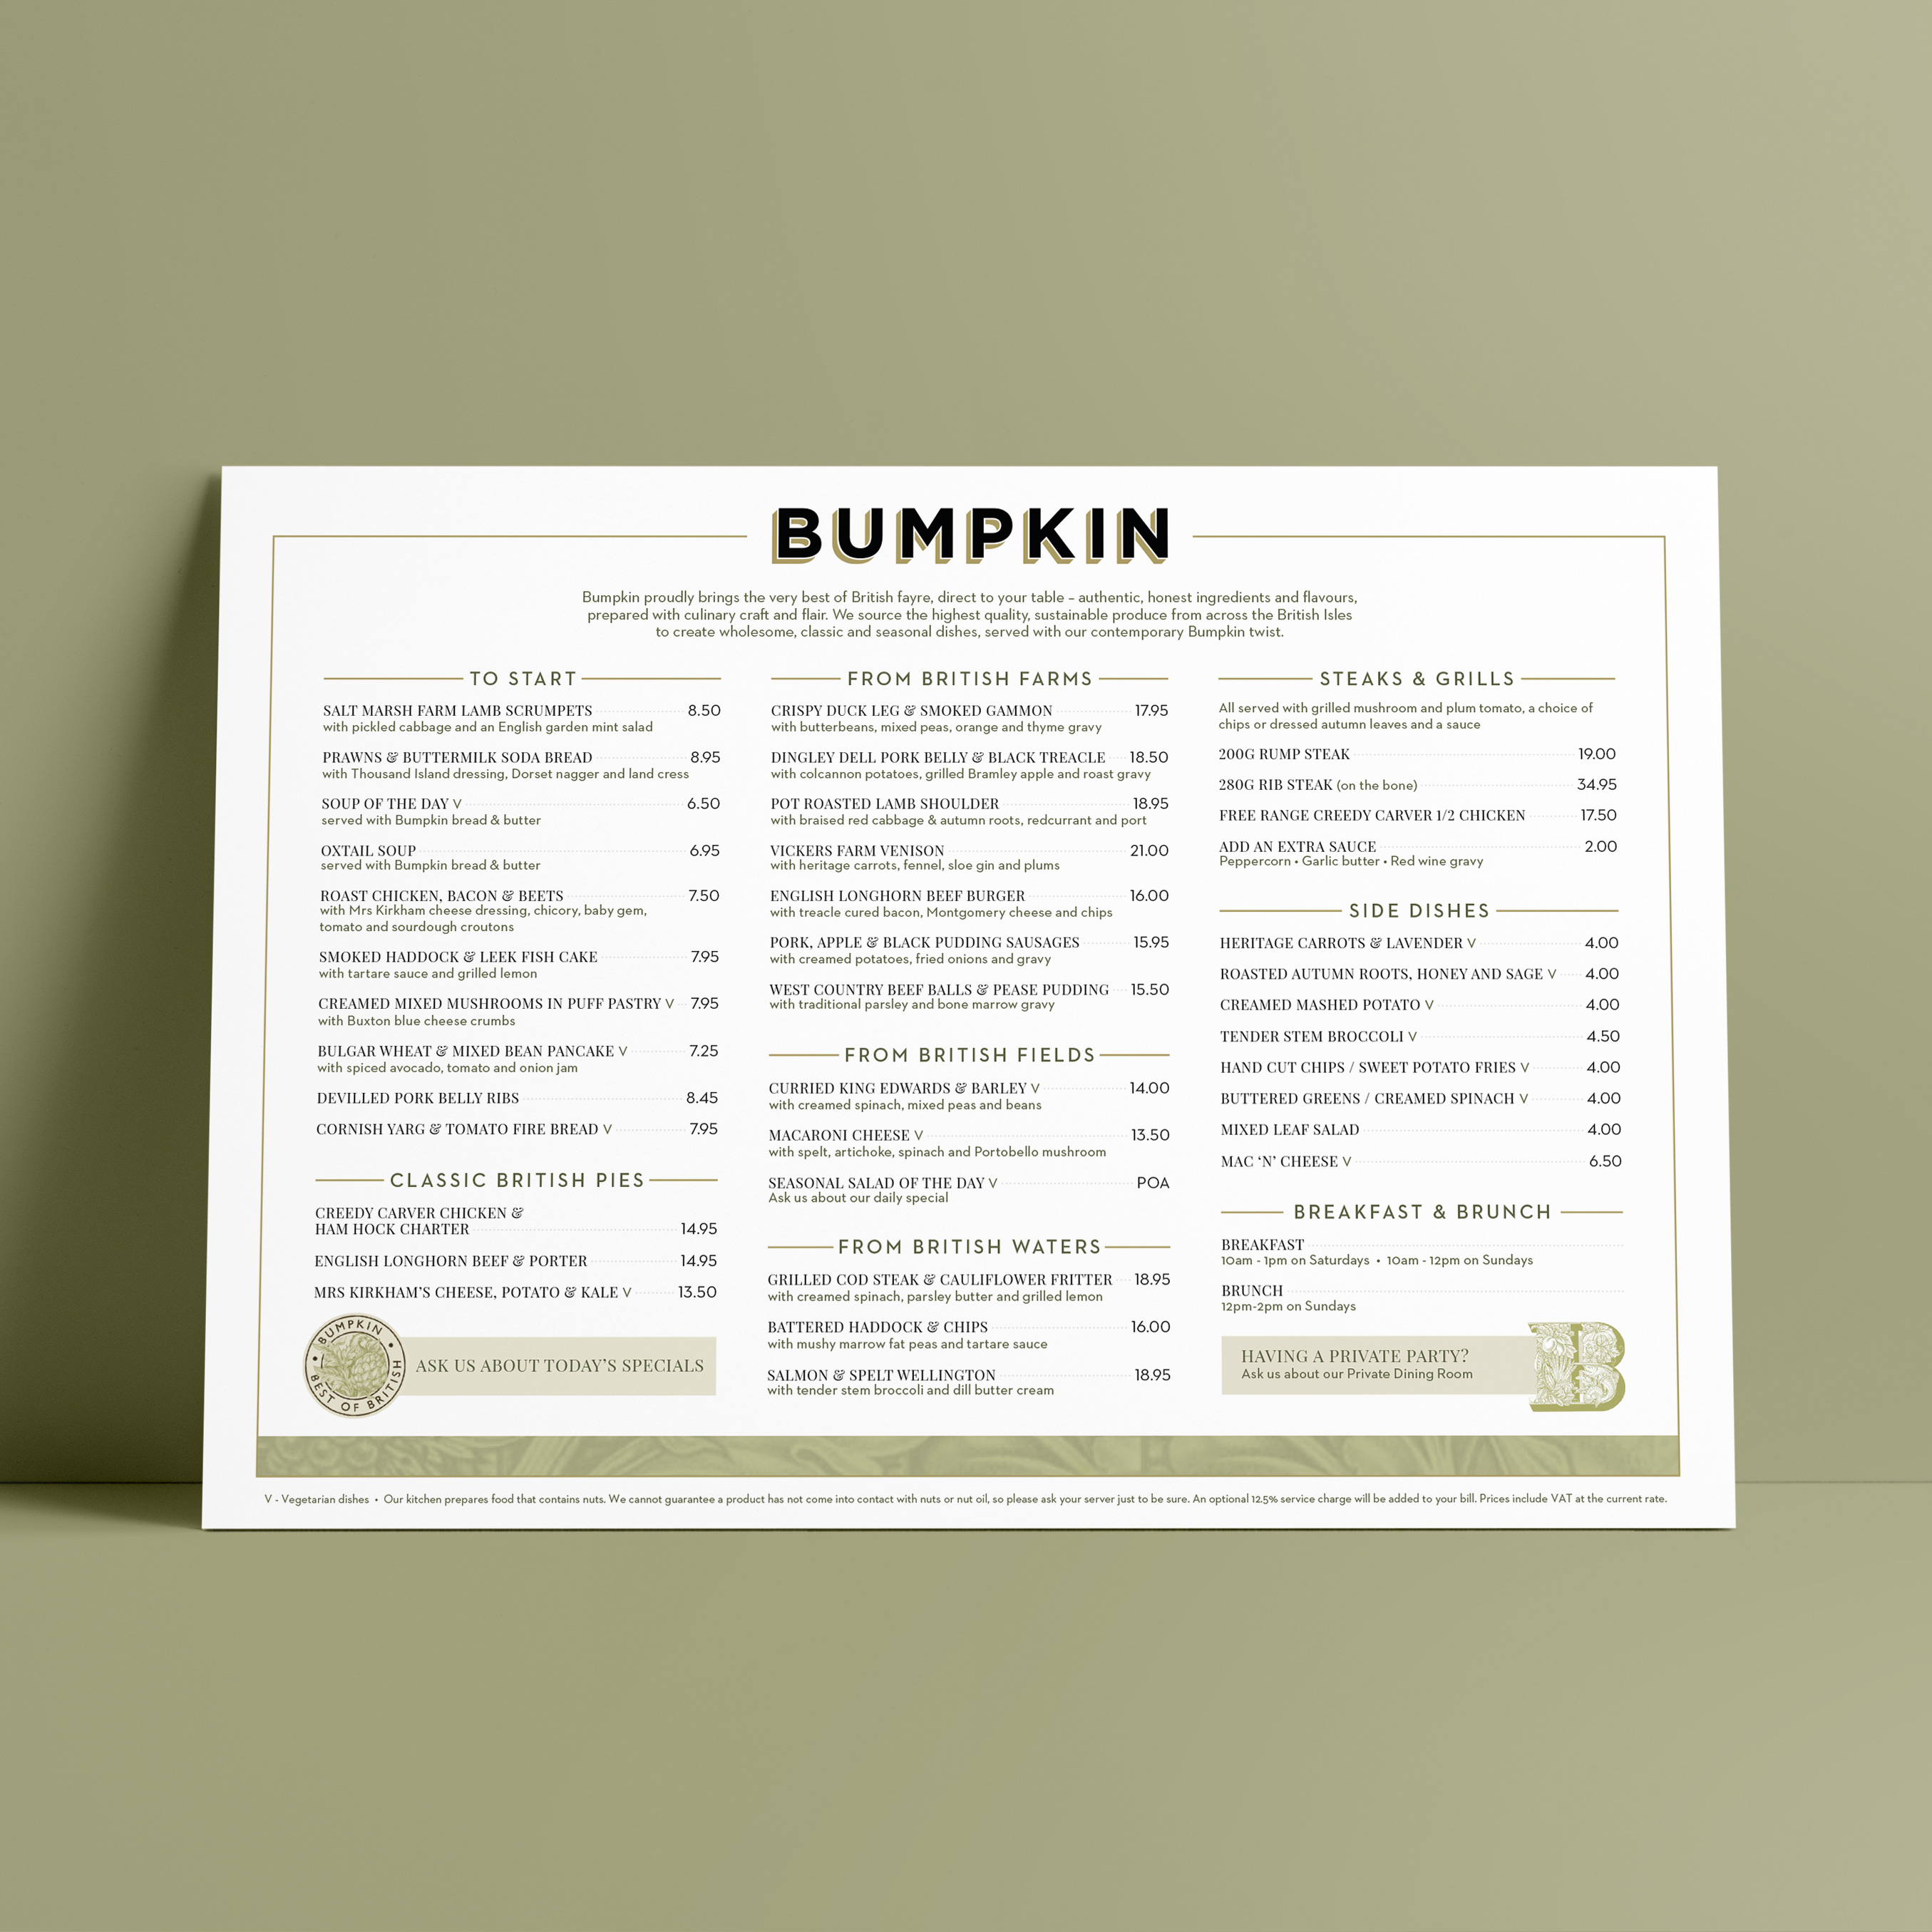 Restaurant menu design and artwork